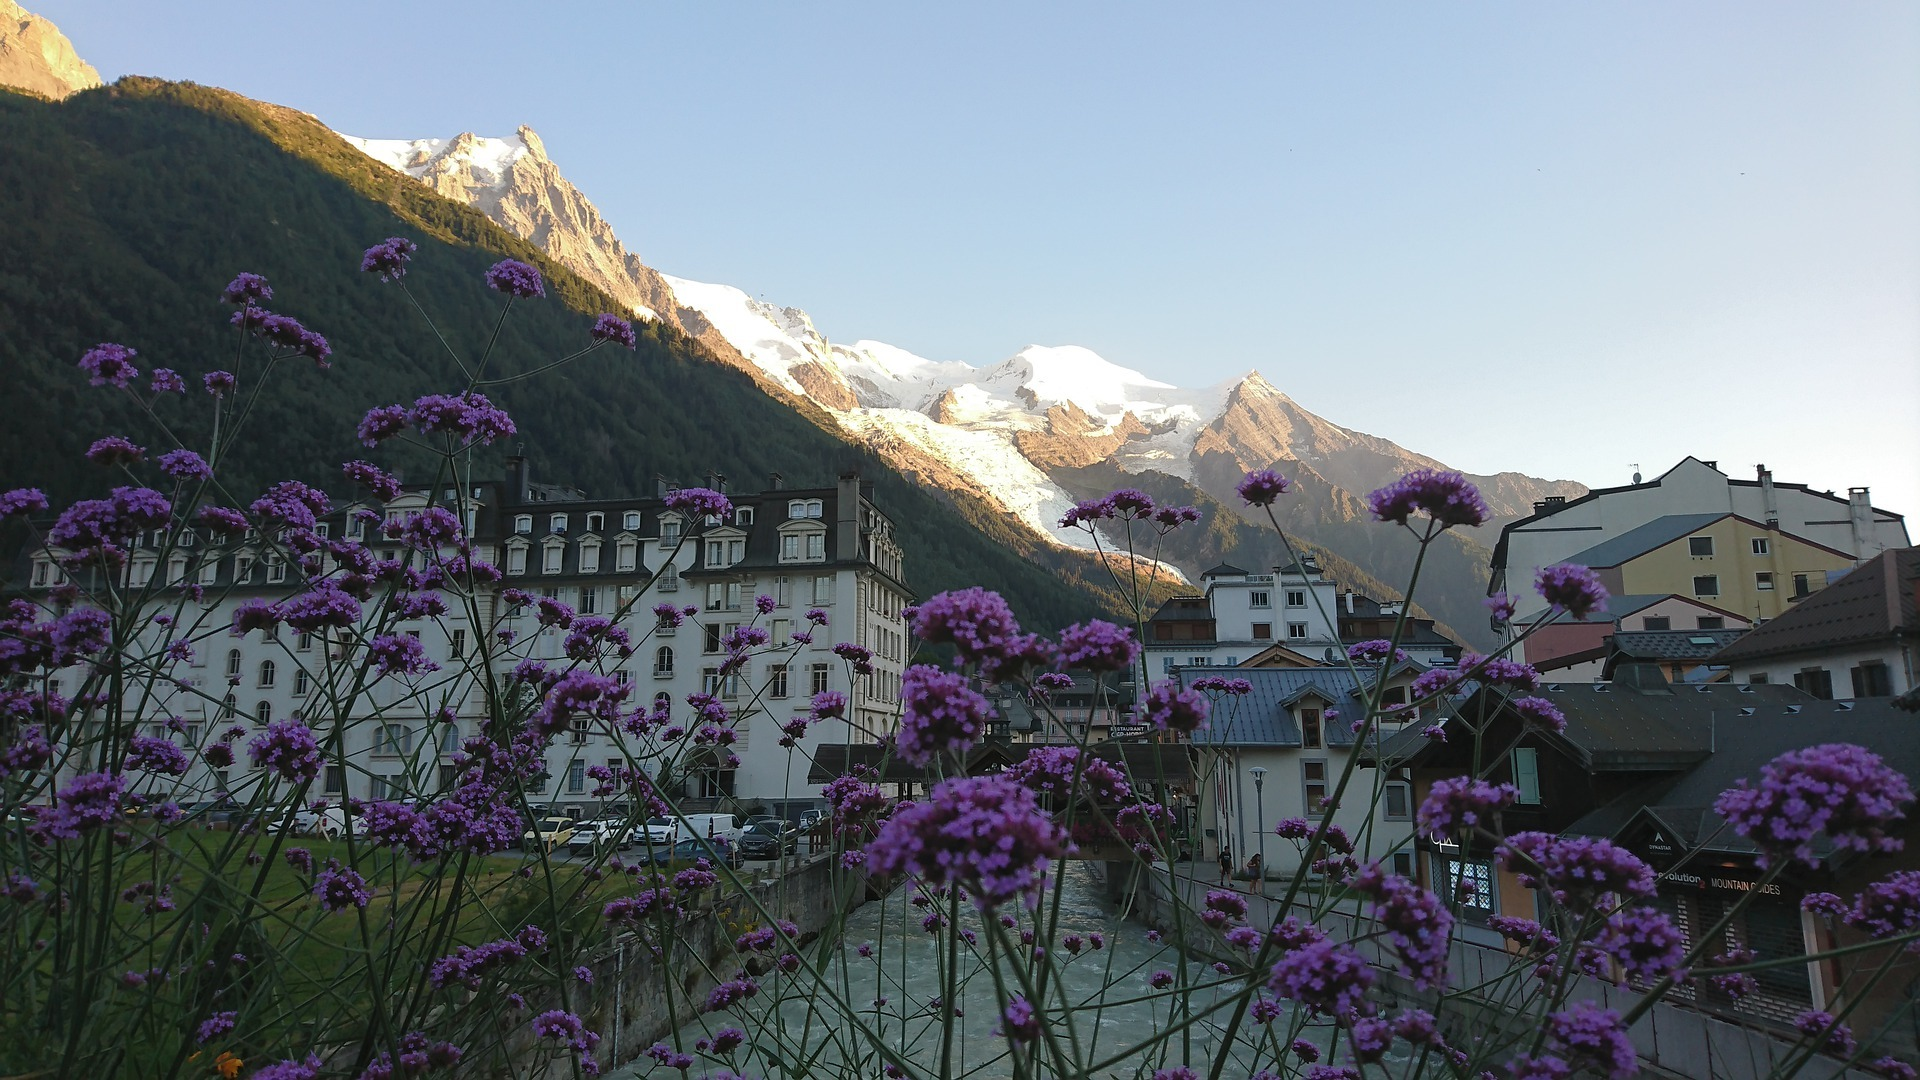 Chamonix in Spring prior to the Mont Blanc Marathon